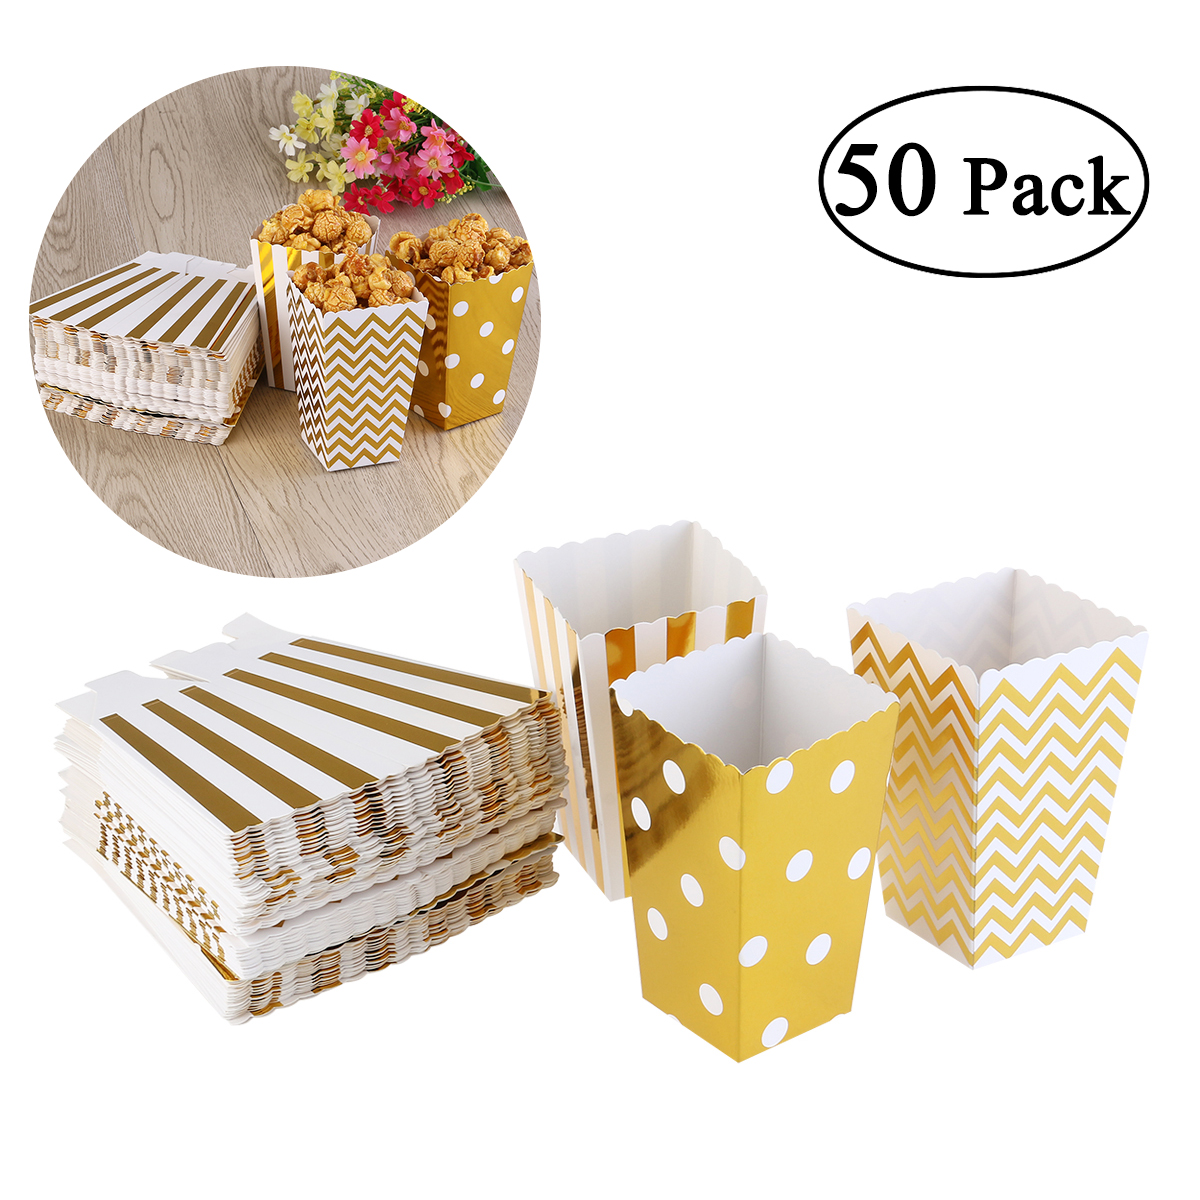 50pcs/24pcs Mini Foil Gold Silver Candy Popcorn Boxes Snack Containers Kids Party Treat Bags Wedding Movie Decoration Supplies